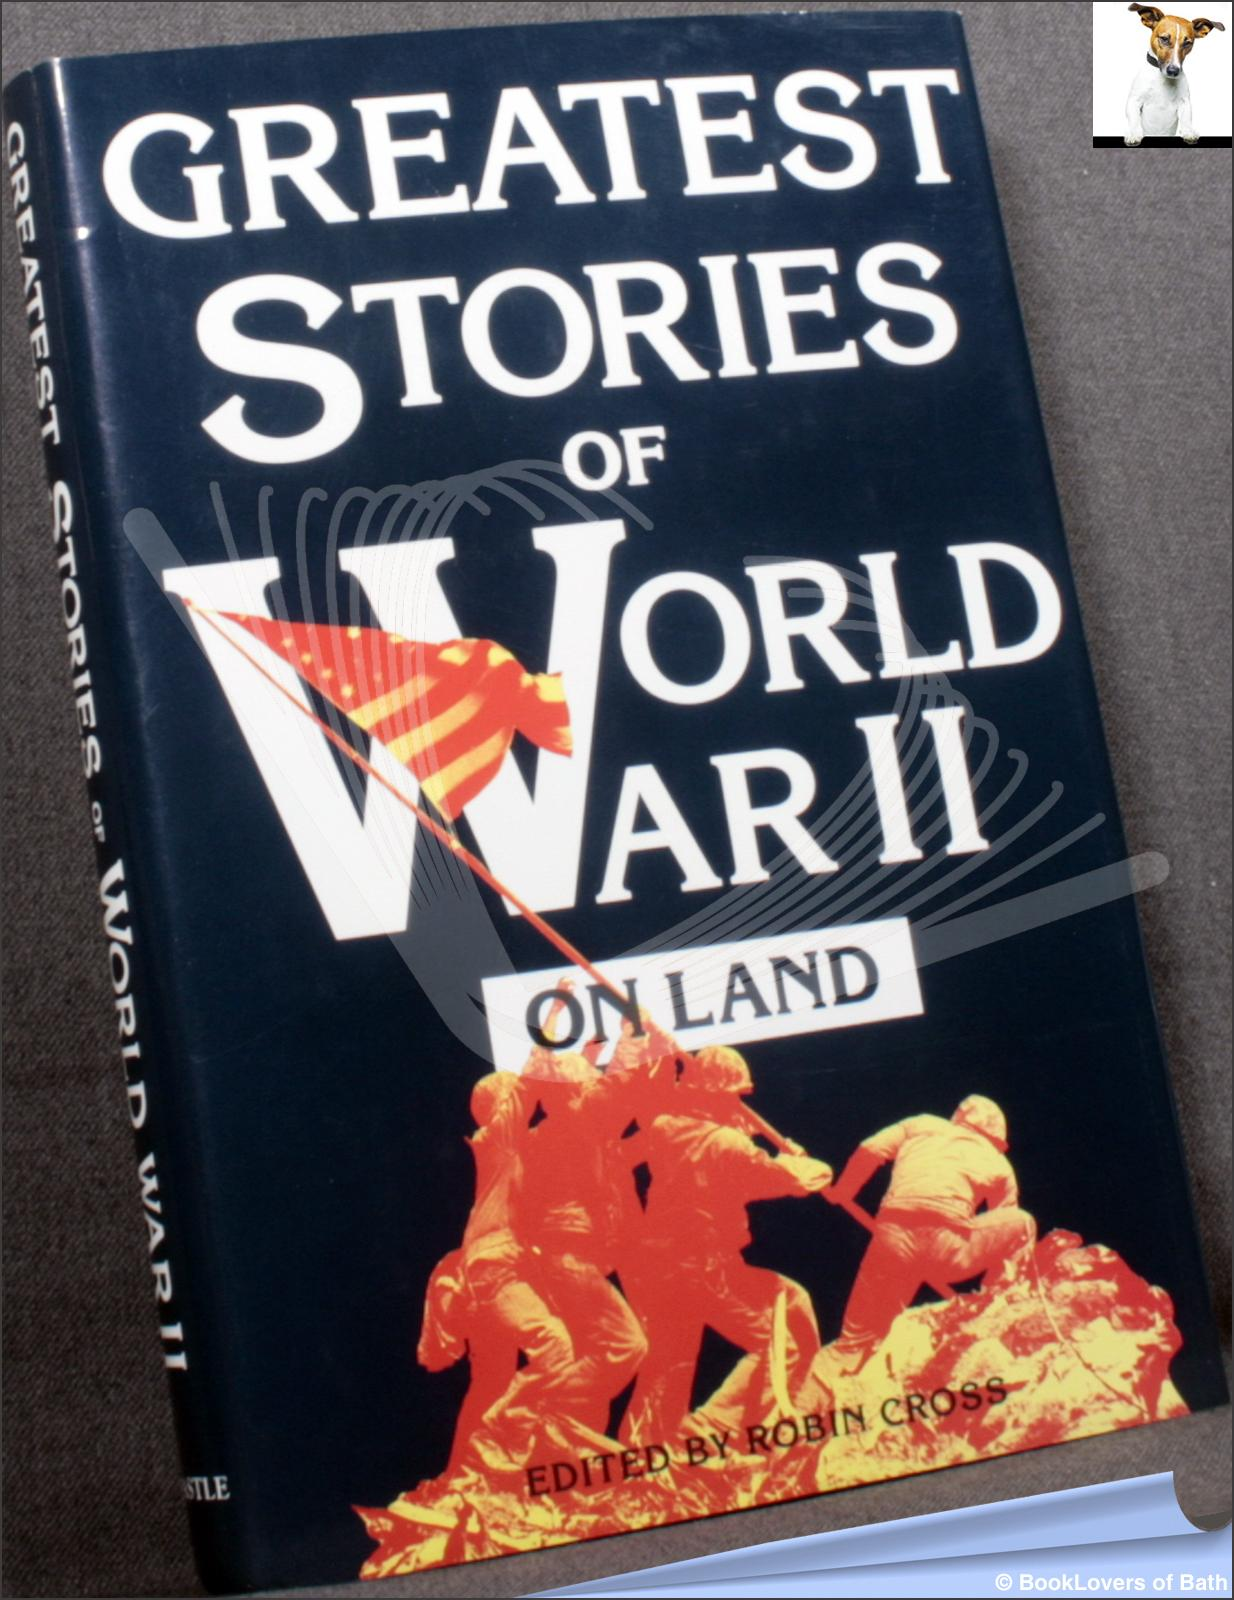 The Greatest Stories of World War II: On Land - Robin Cross